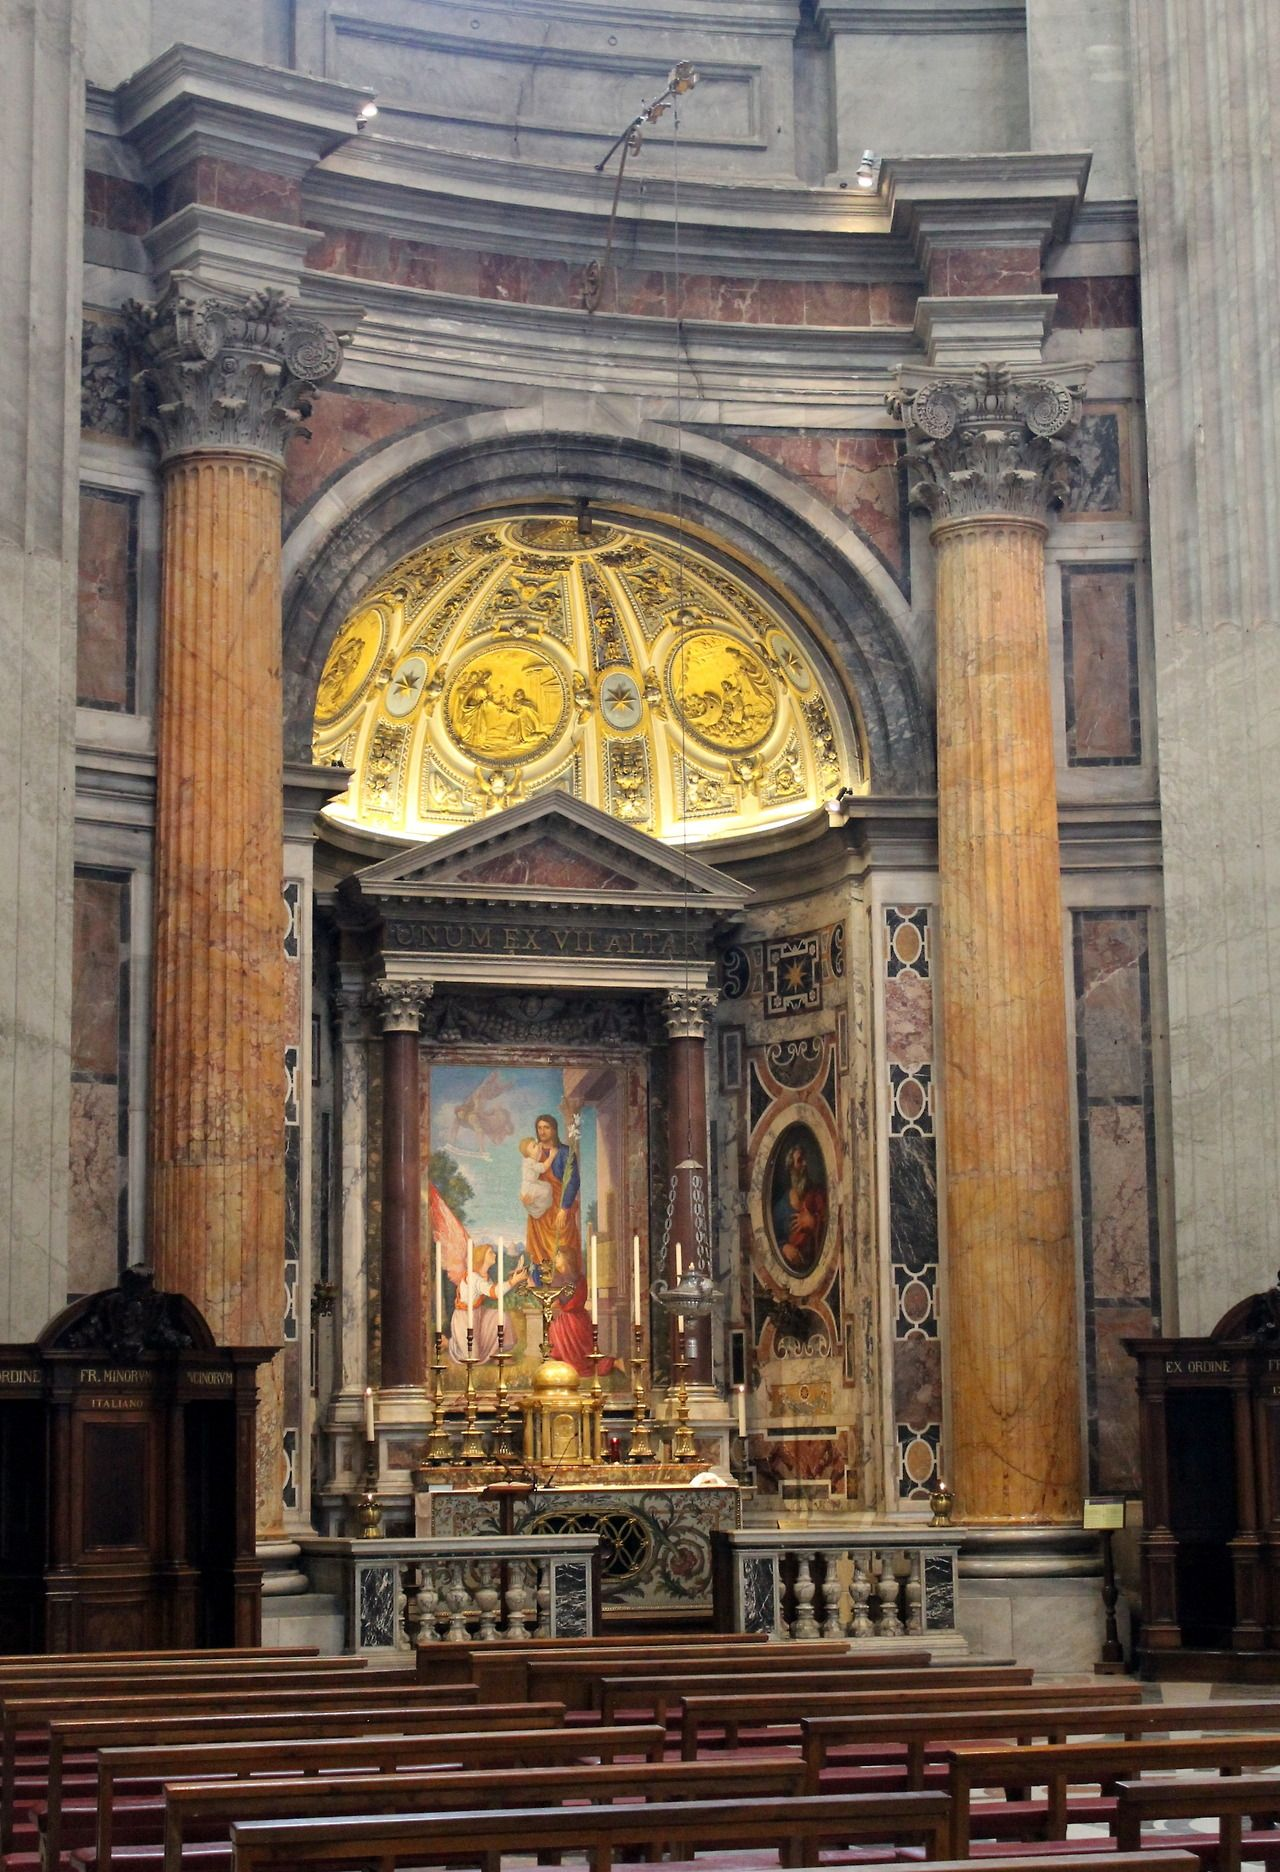 The Altar of Saint Joseph in St. Peter's Basilica, which